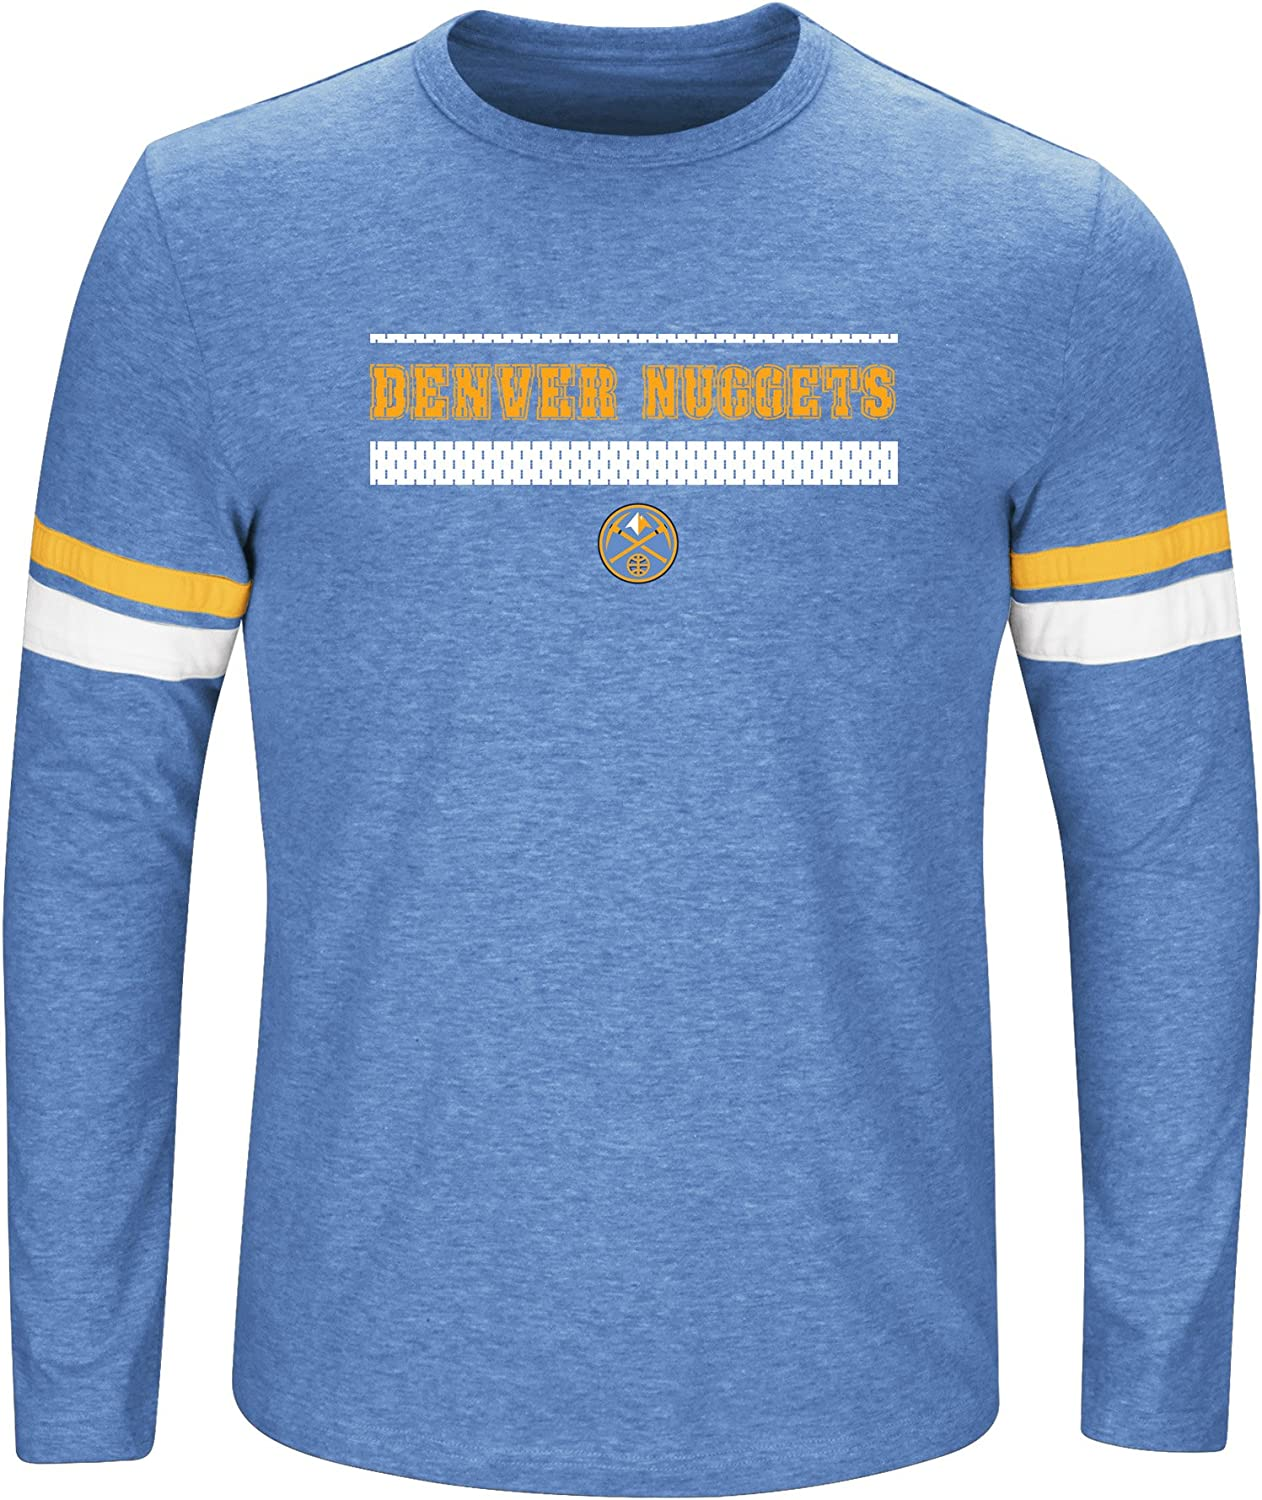 Coast Blue Heather//Gold 2X NBA Denver Nuggets Long Sleeve Screen Print Tee